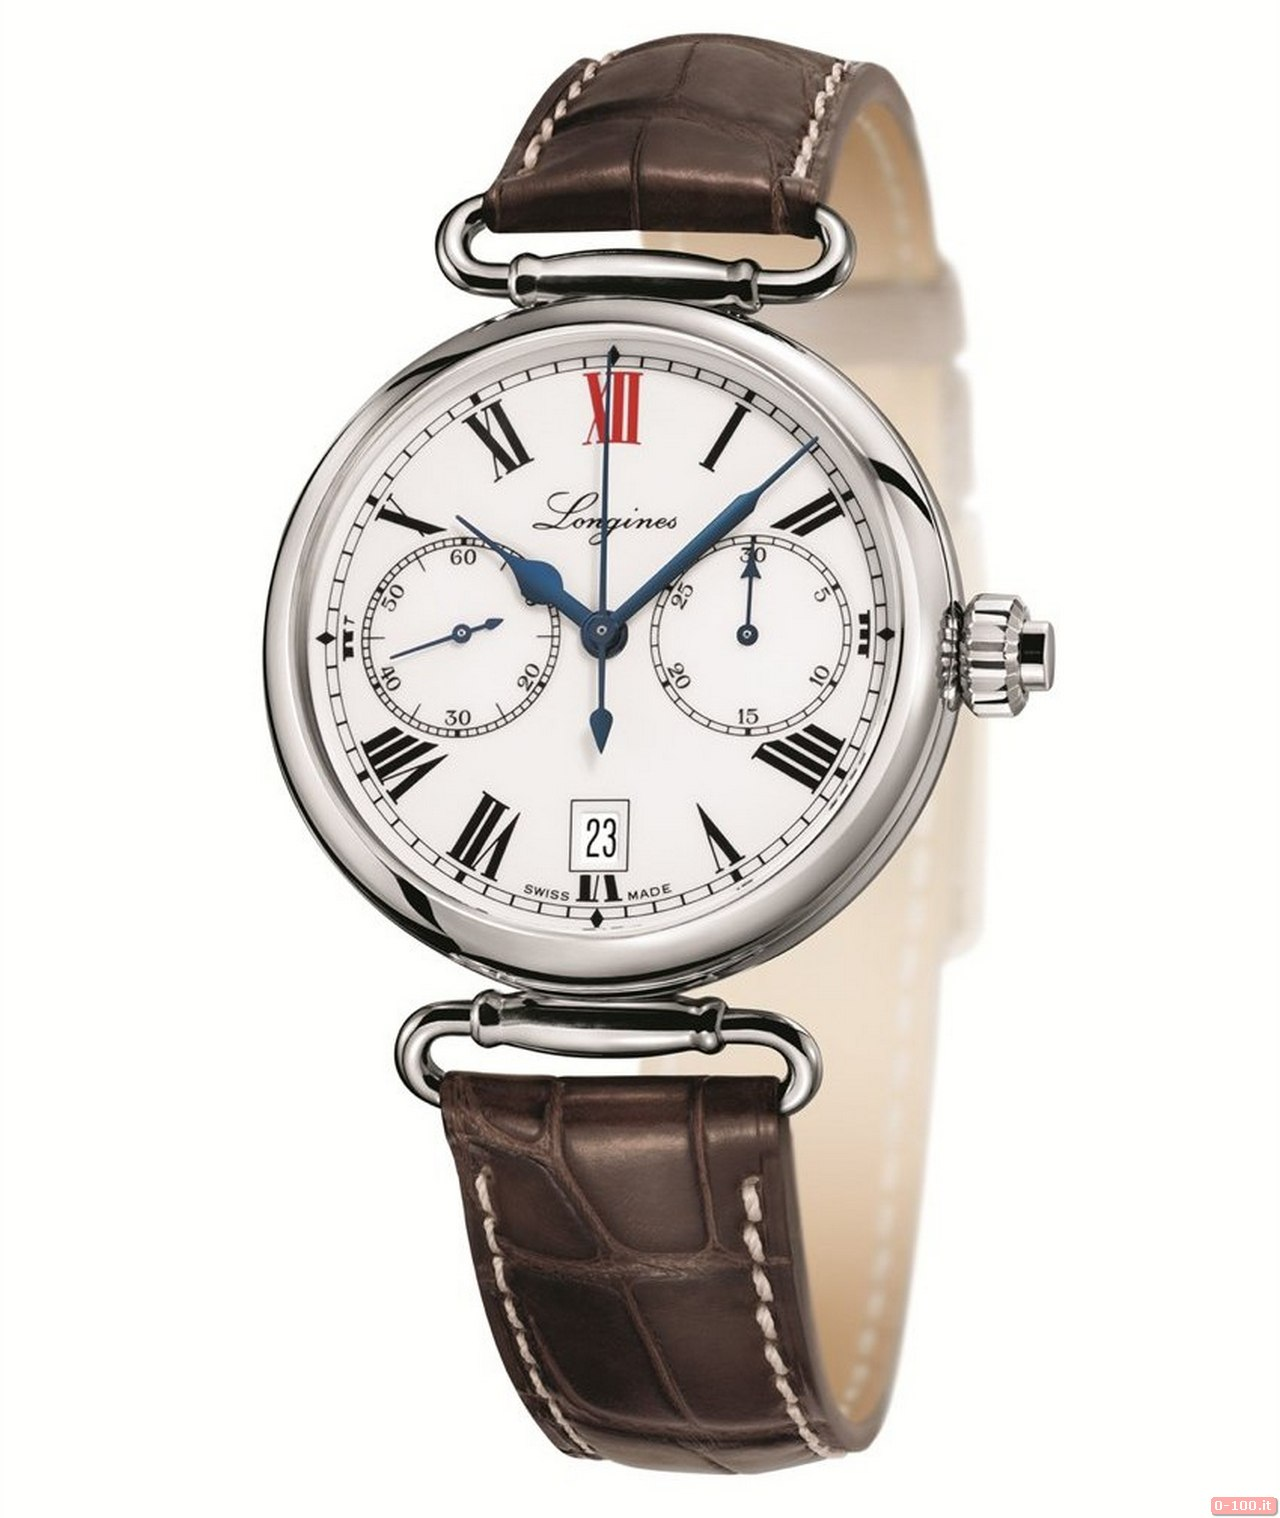 anteprima-baselworld-2014-longines-column-wheel-single-push-piece-chronograph_0-1006